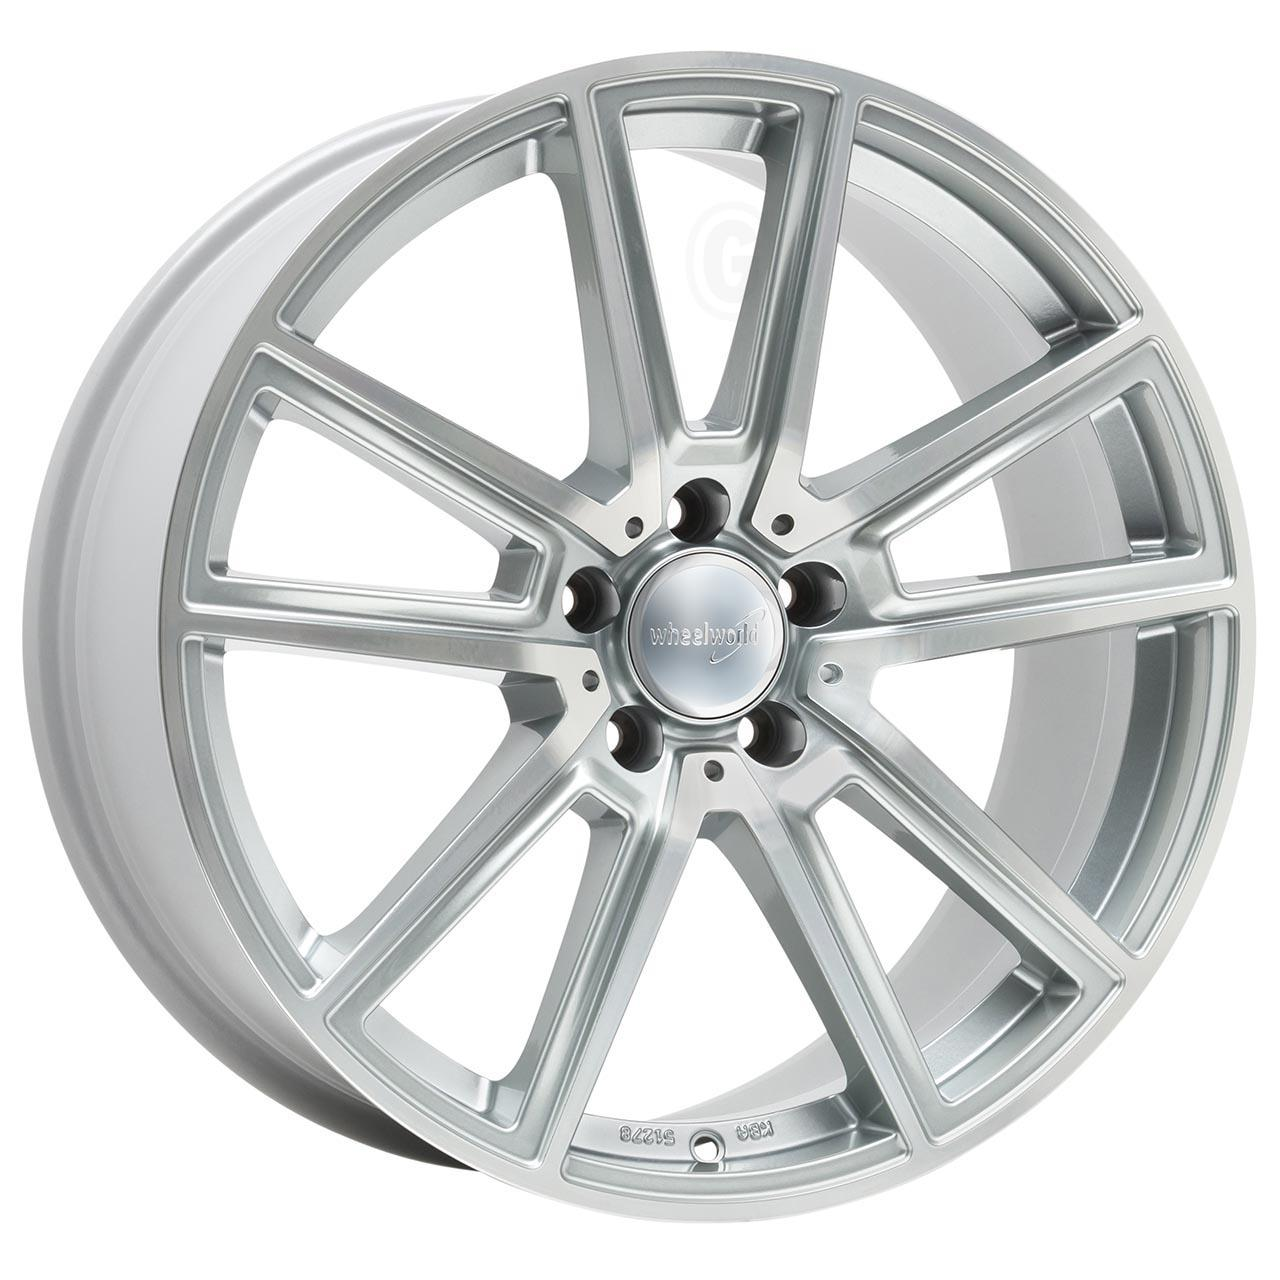 Wheelworld Wh30 Silver full machined 8Jx18 5x112 ET45